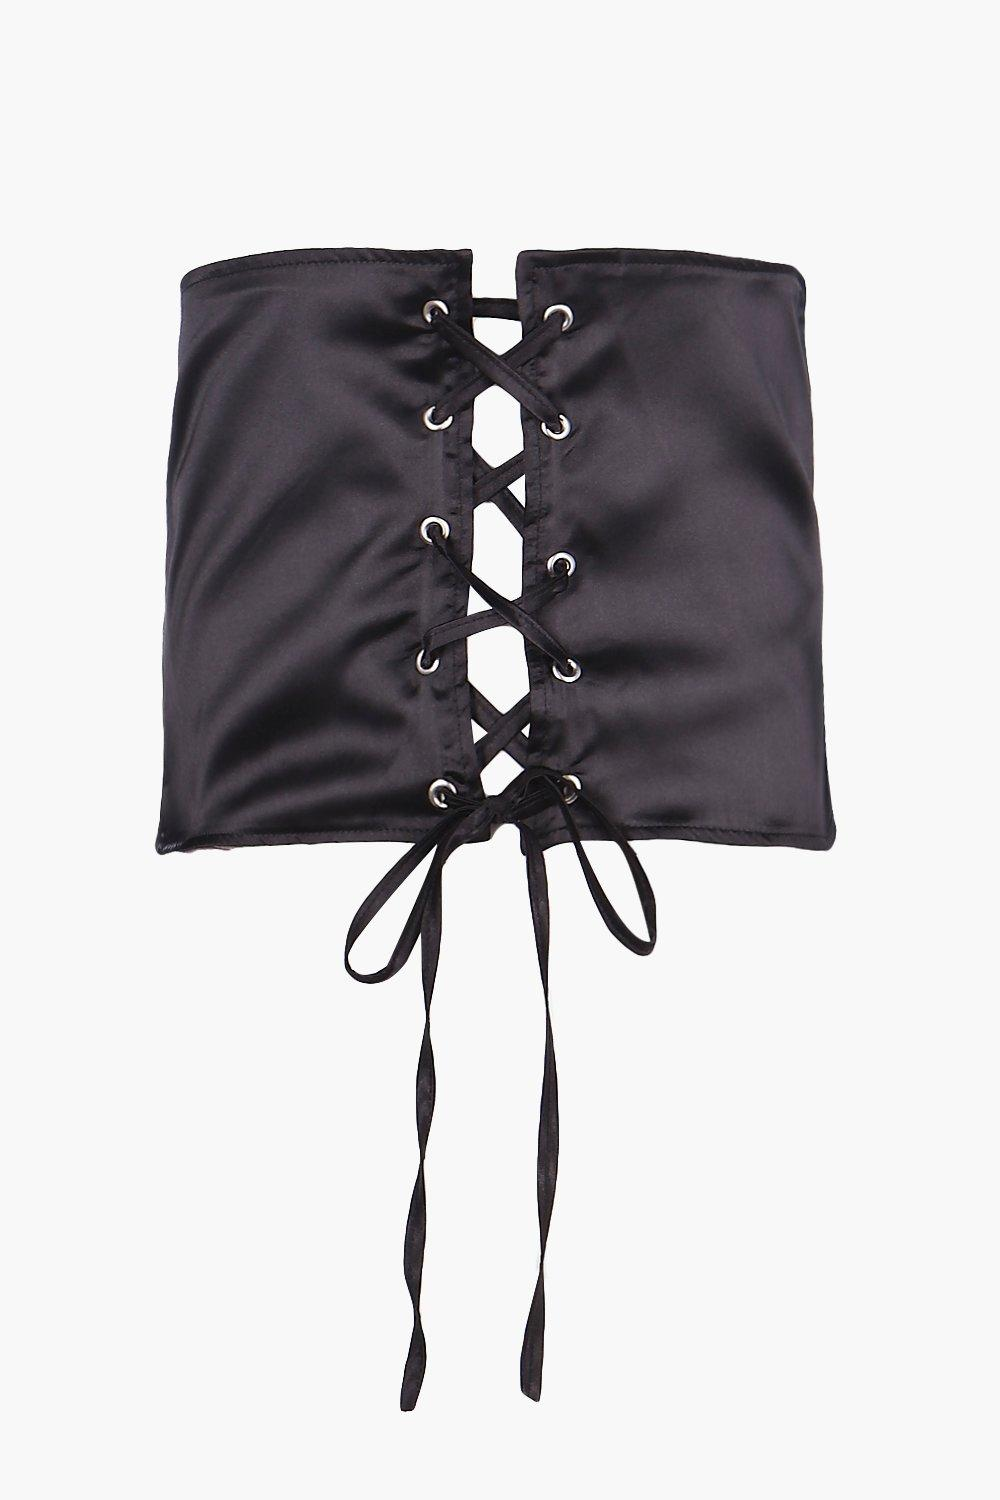 Satin Lace Up Corset Belt - black - Kitty Satin La